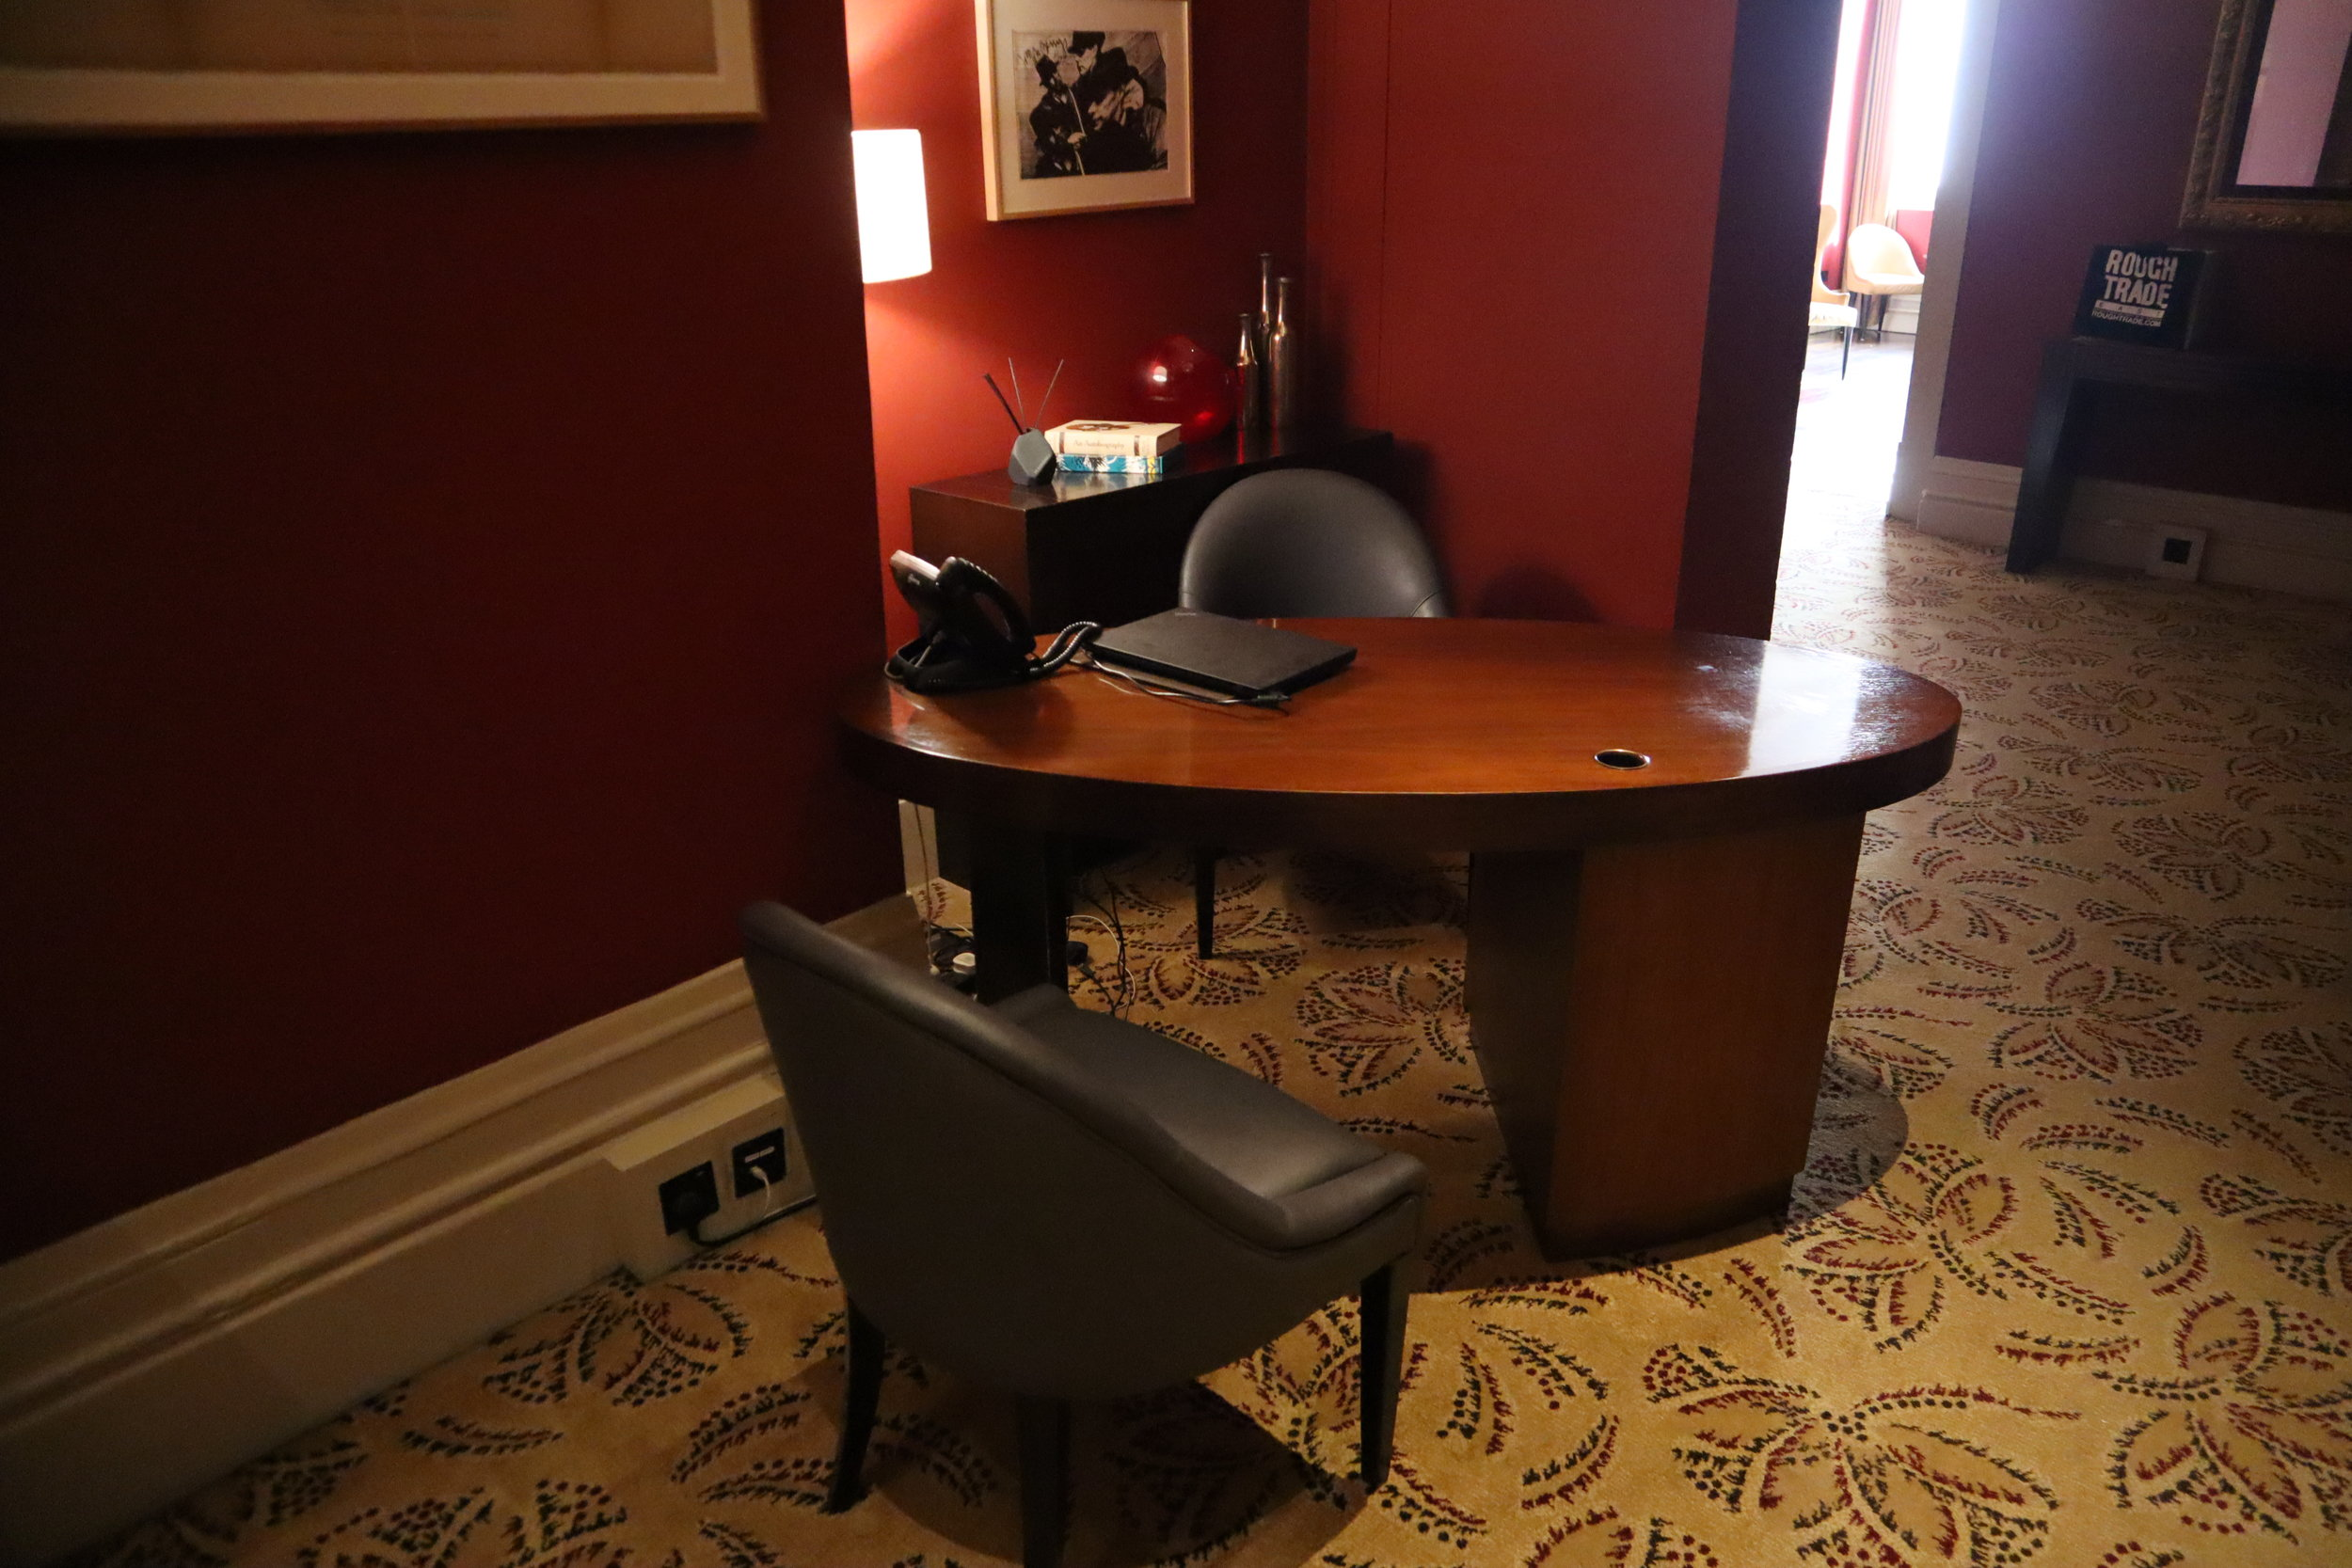 St. Pancras Renaissance Hotel London – Chambers Club concierge desk